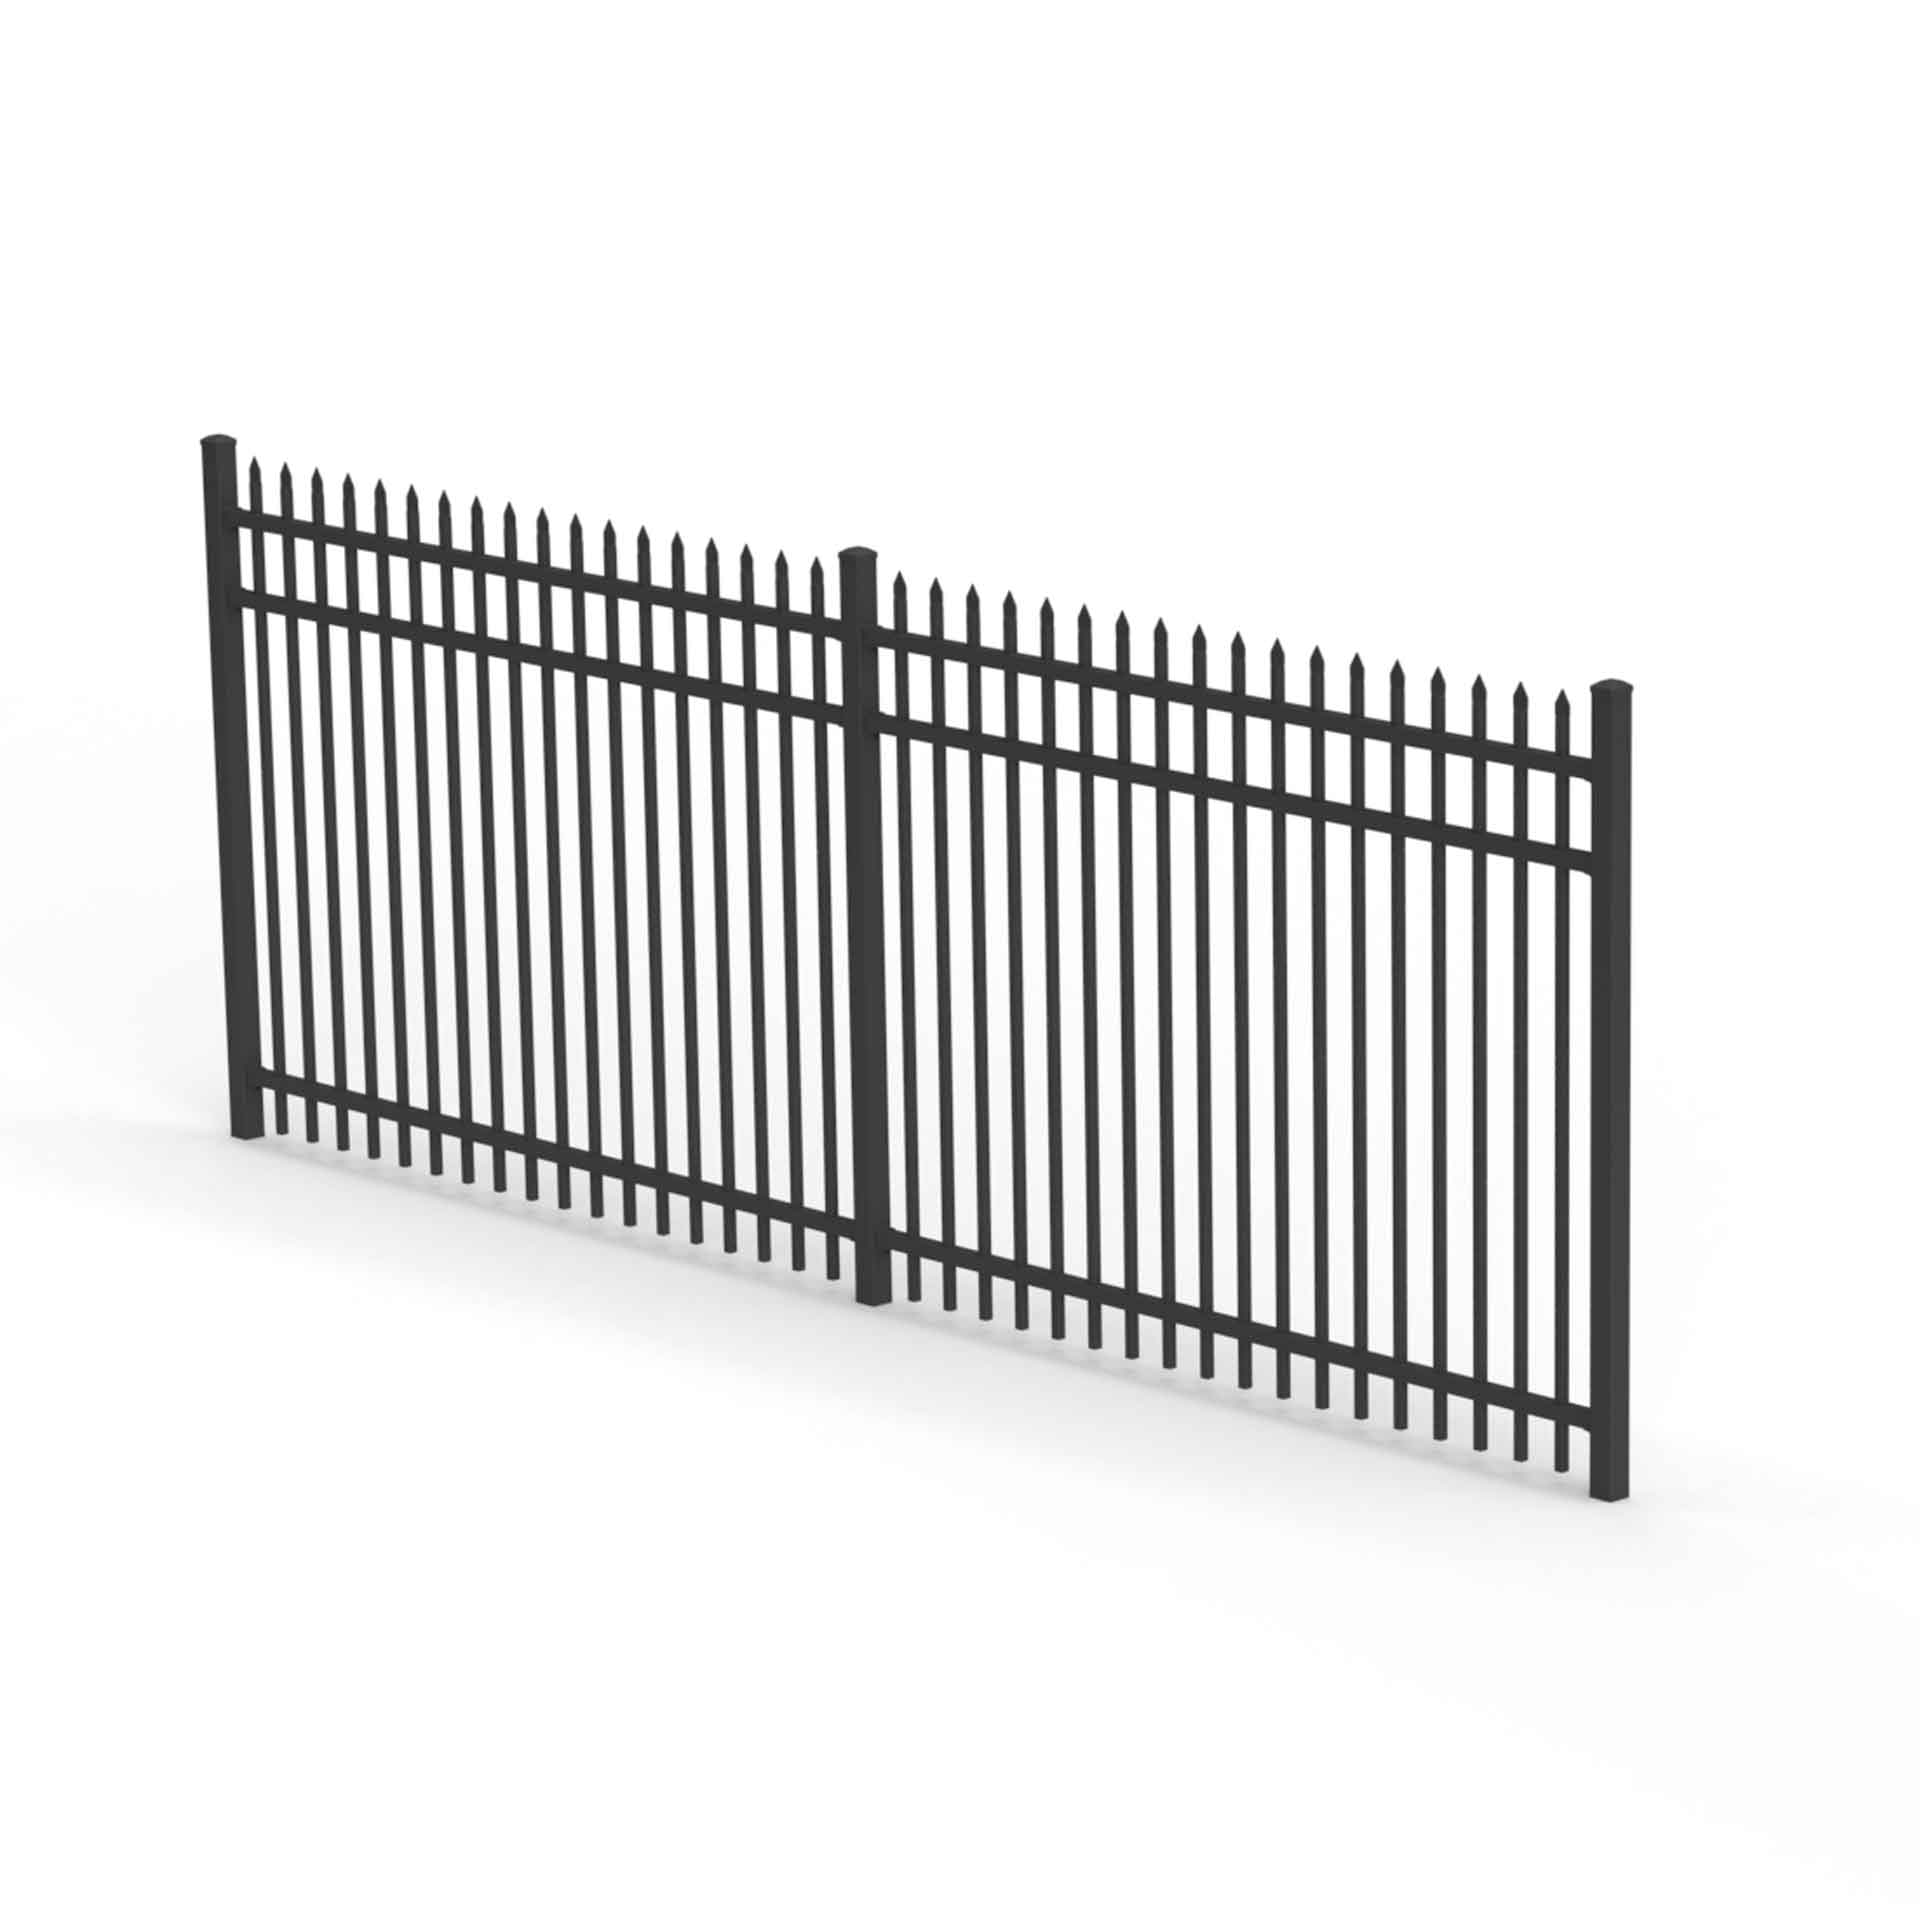 secura fence panel spiked top aluminium fence